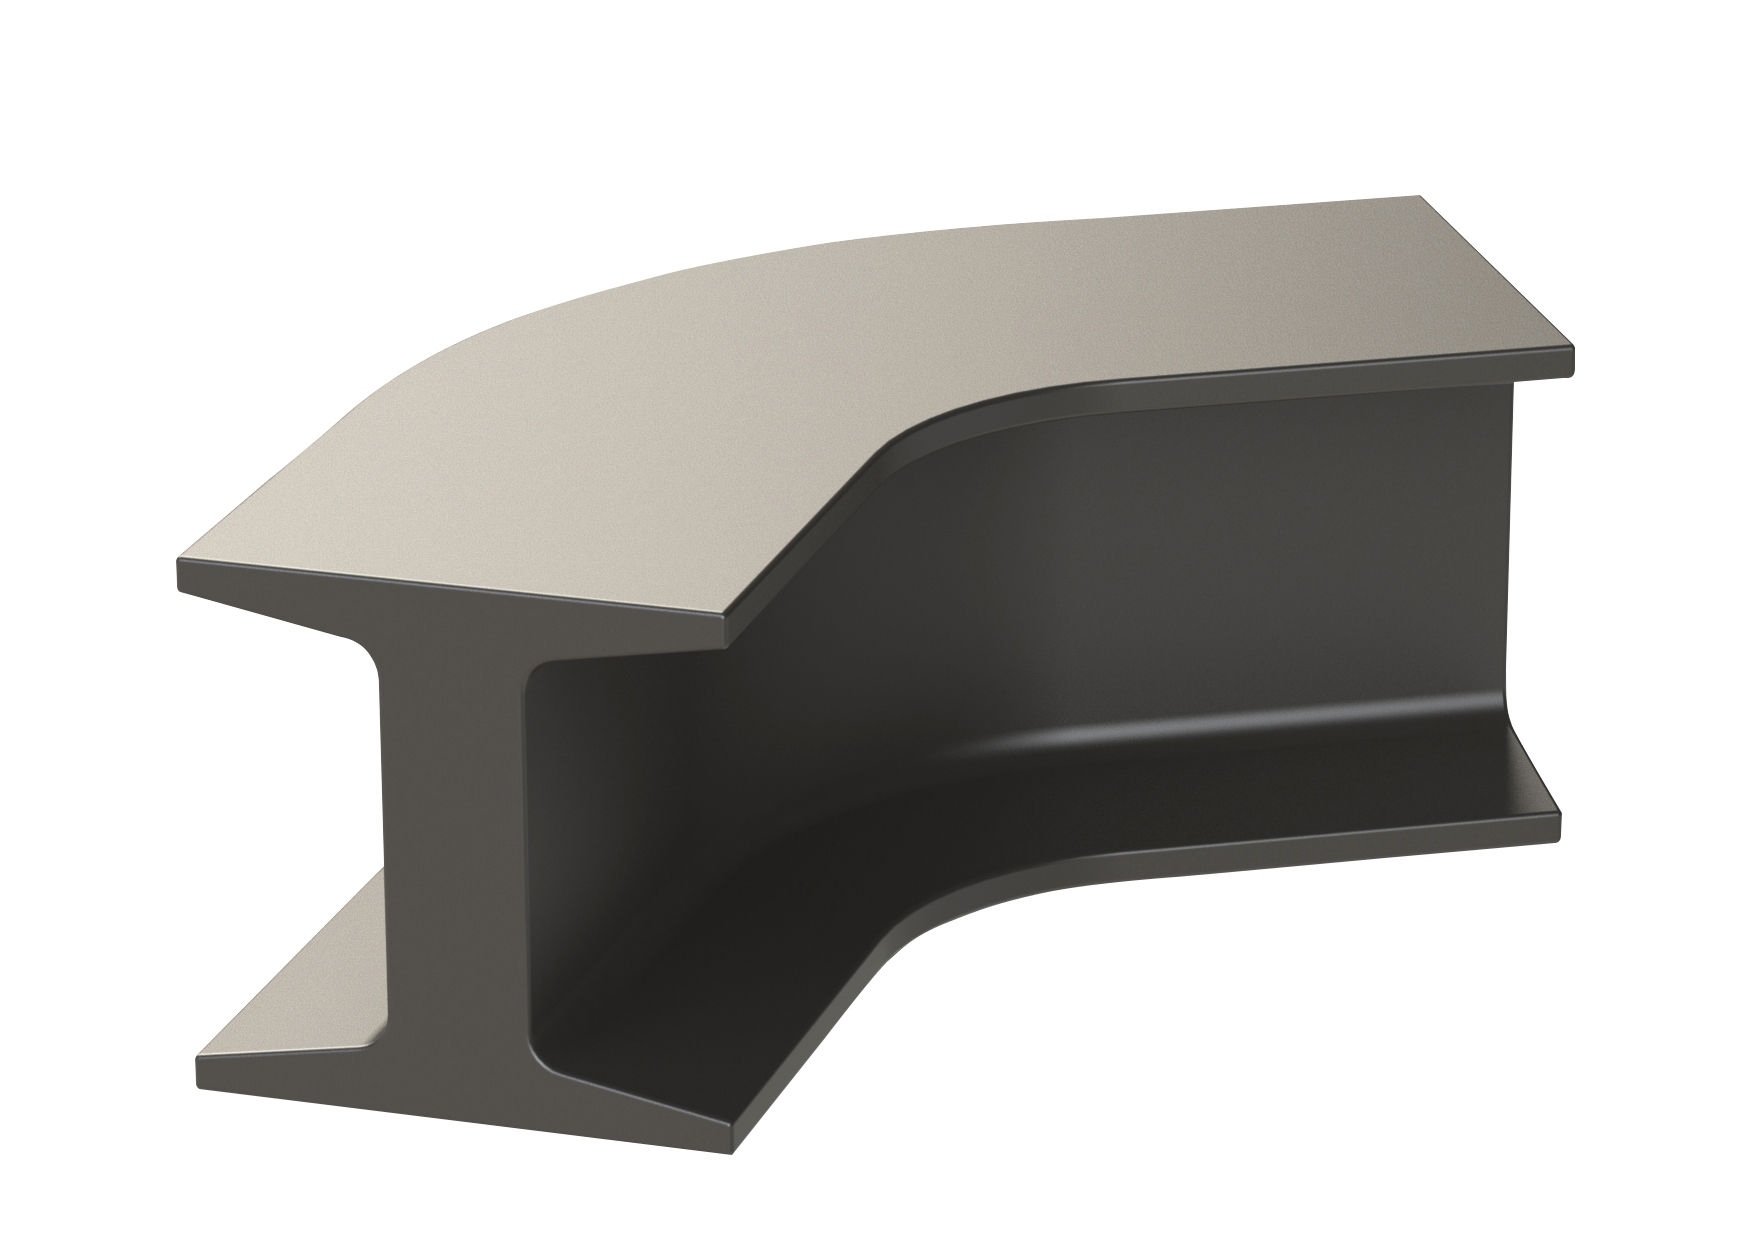 Furniture - Kids Furniture - Iron Bench - / Curved - L 121 cm by Slide - Elephant grey - recyclable polyethylene